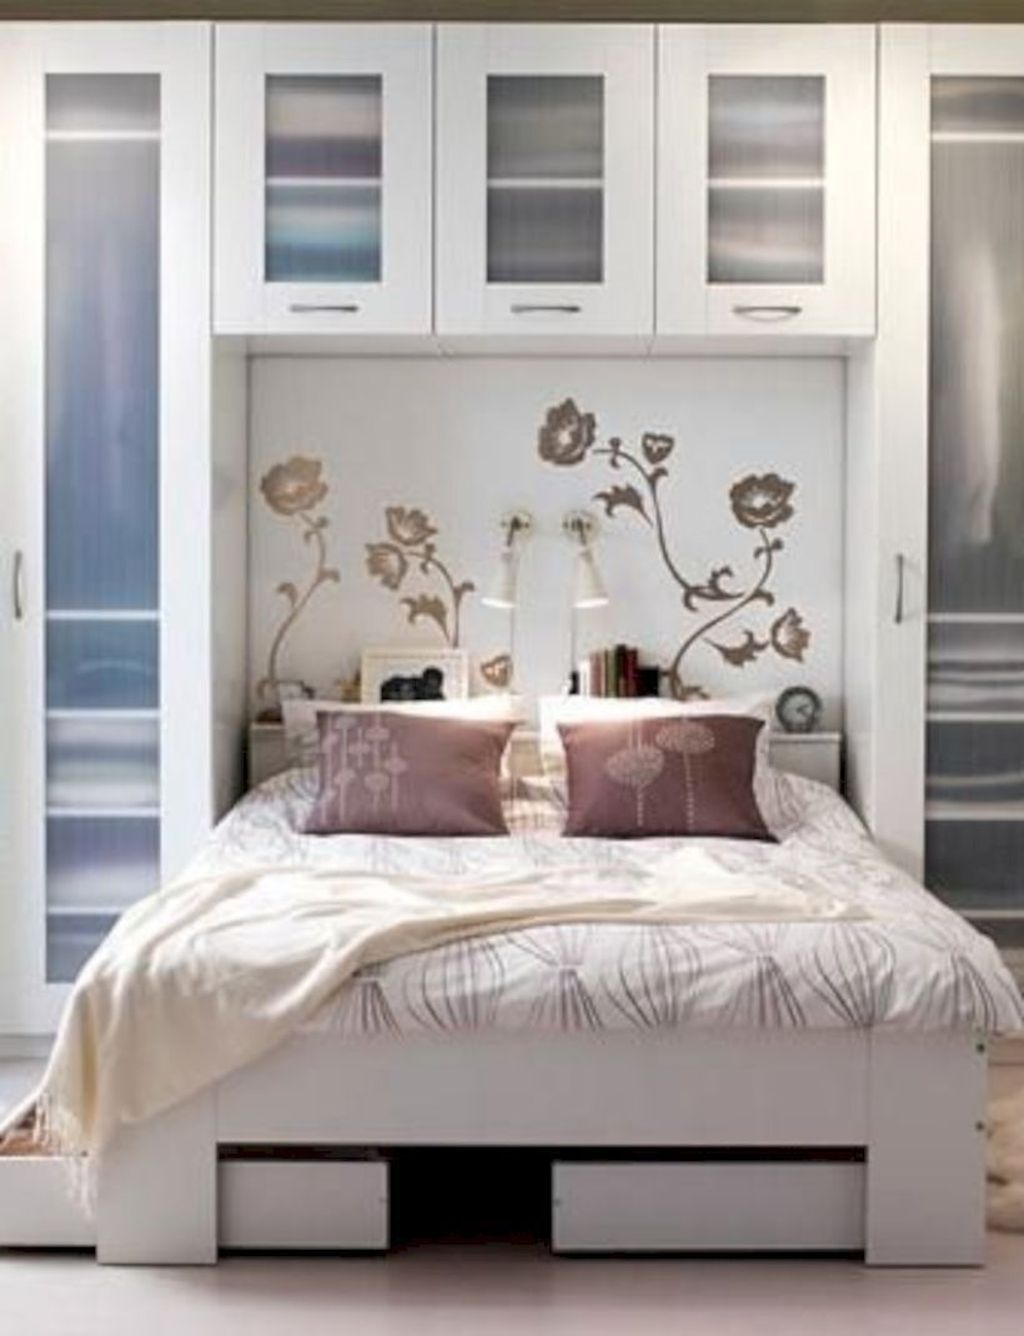 20 Newest Bedroom Storage Design Ideas For Small Space Small